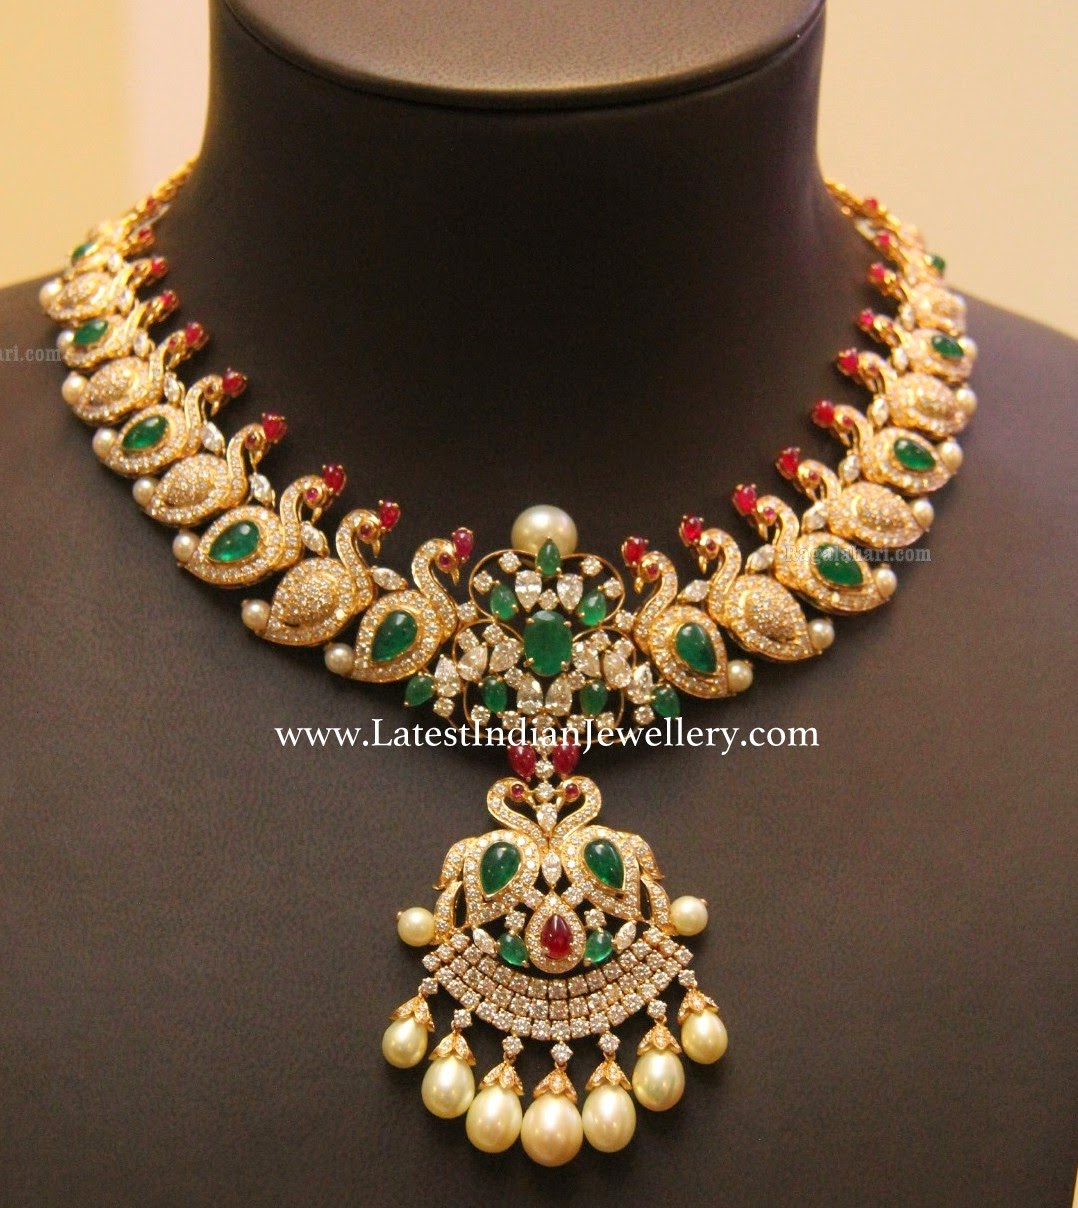 Parrot Design Diamond Bridal Necklace Latest Indian